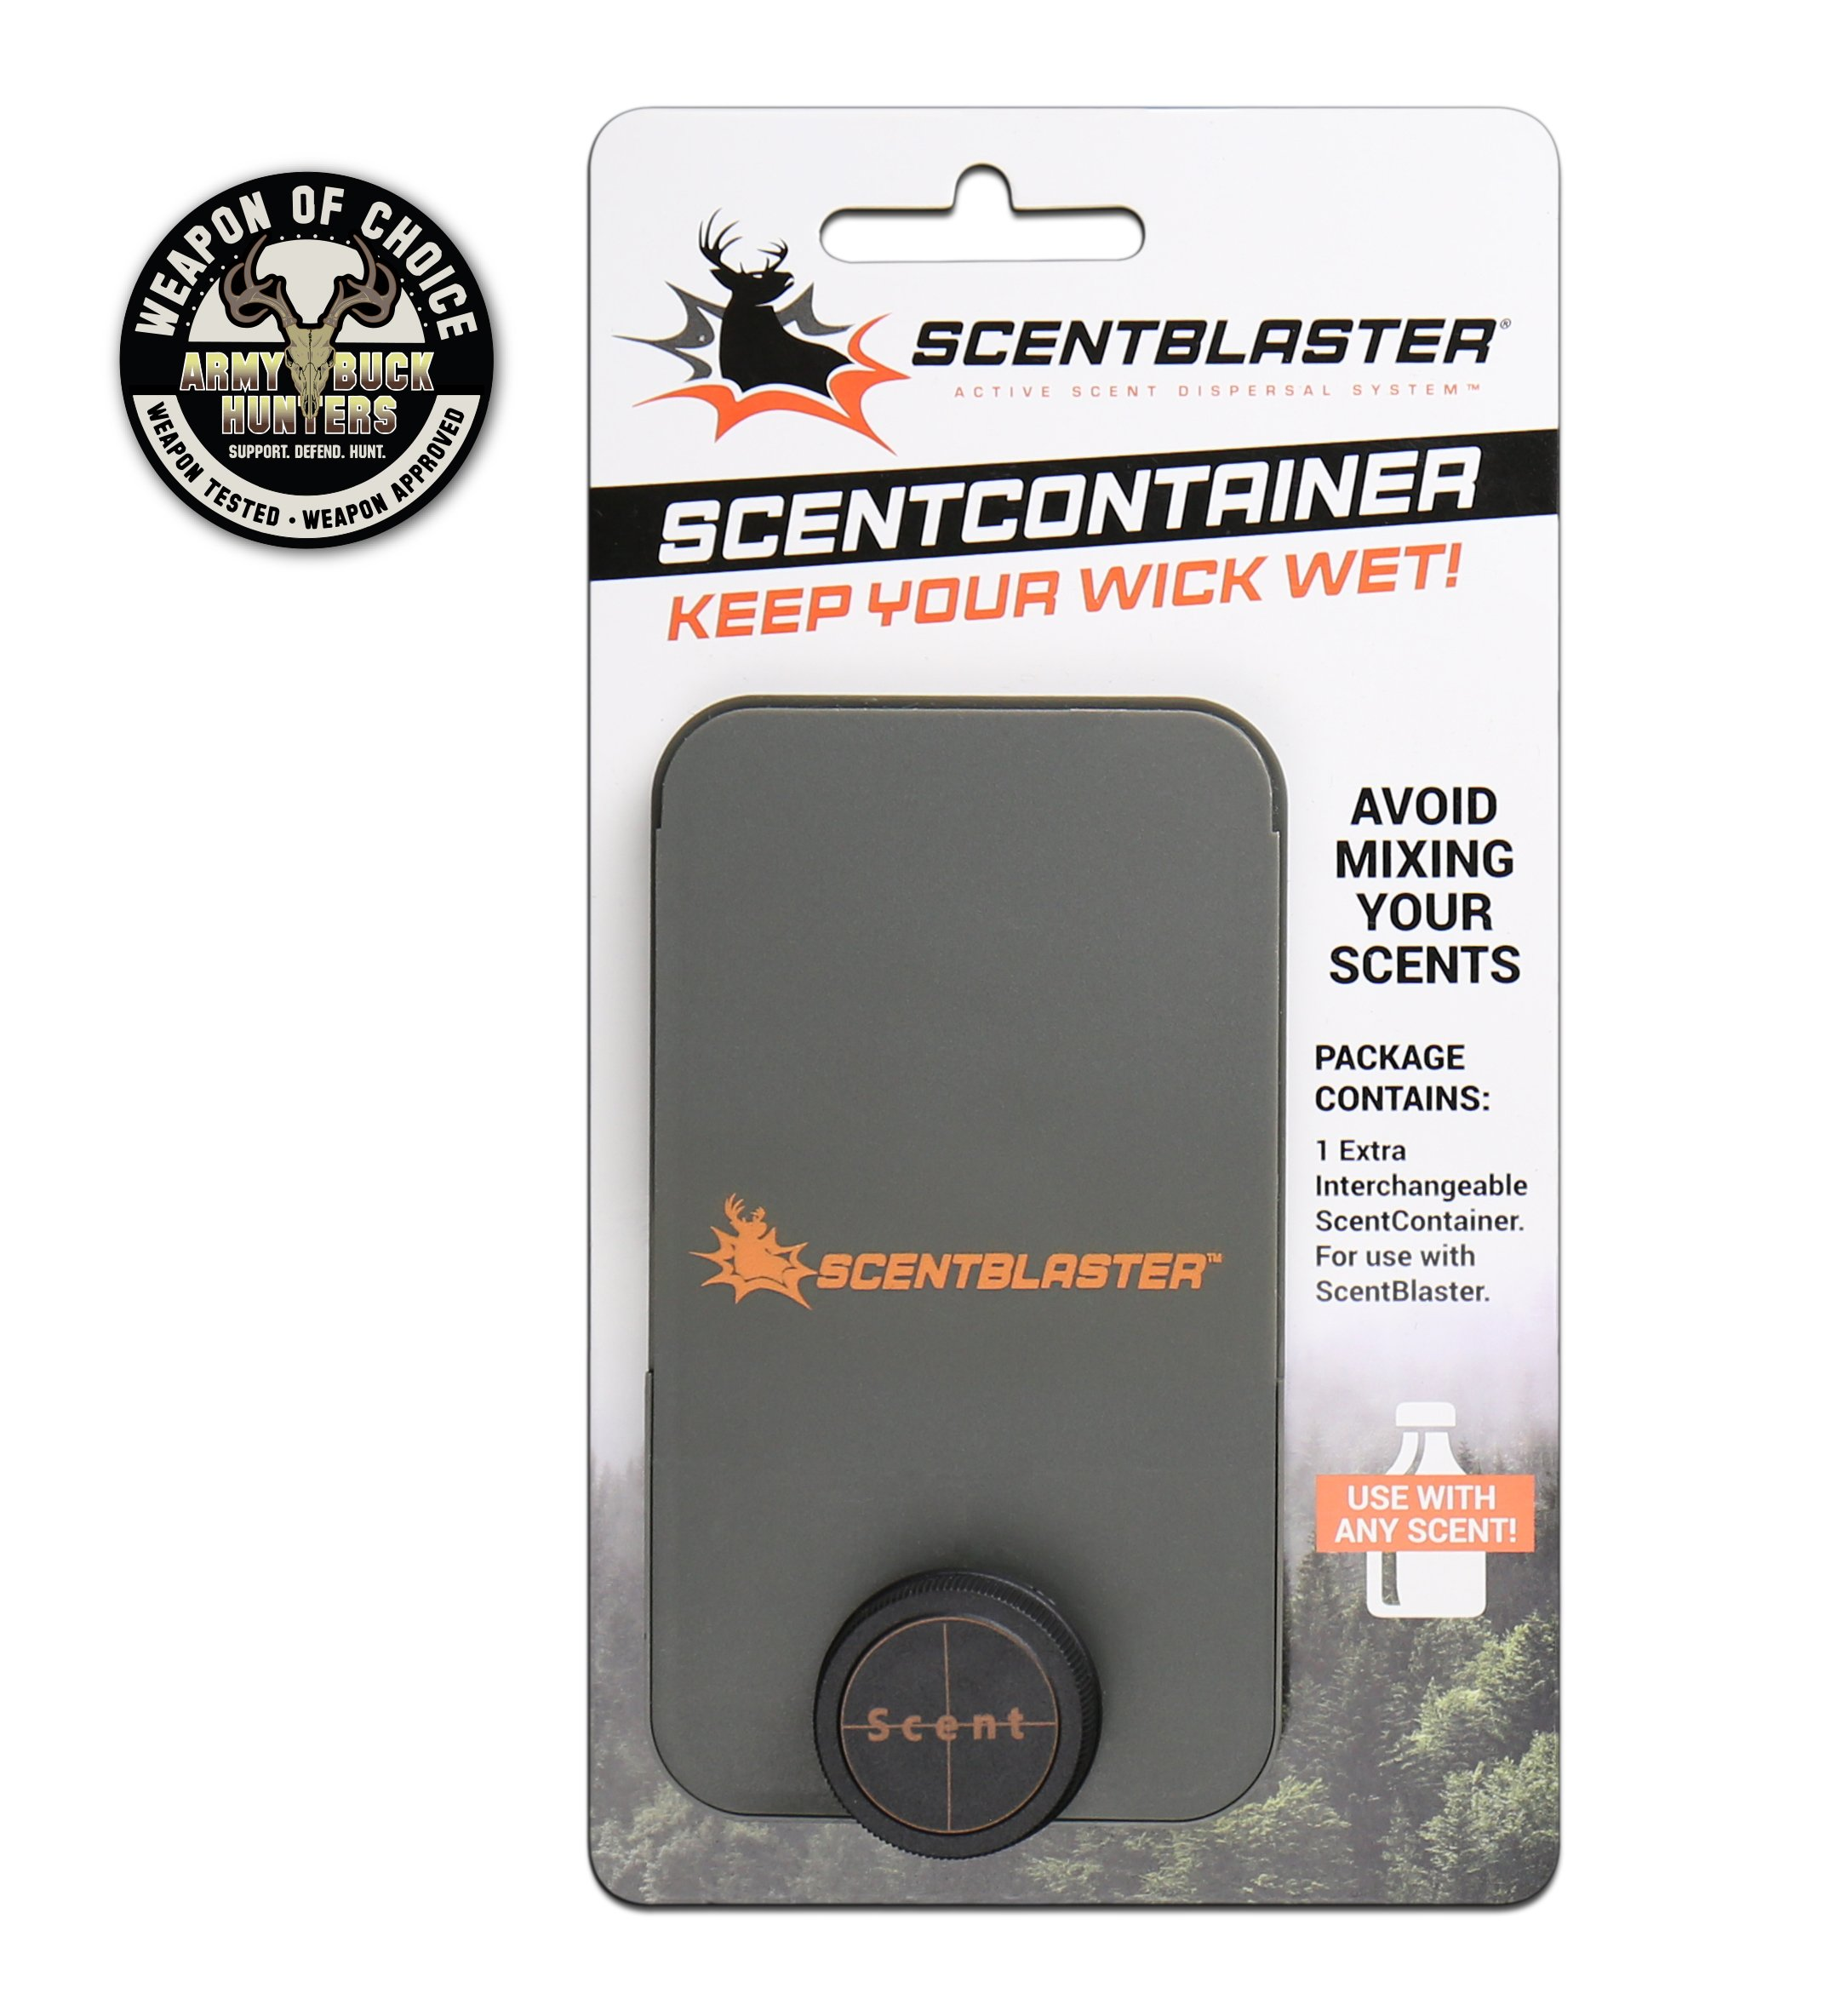 ScentContainer holds a bottle of your favorite hunting scent. Swap or store different cover & attractant scents with interchangeable ScentContainers. Use with ScentBlaster the ultimate wicking system!